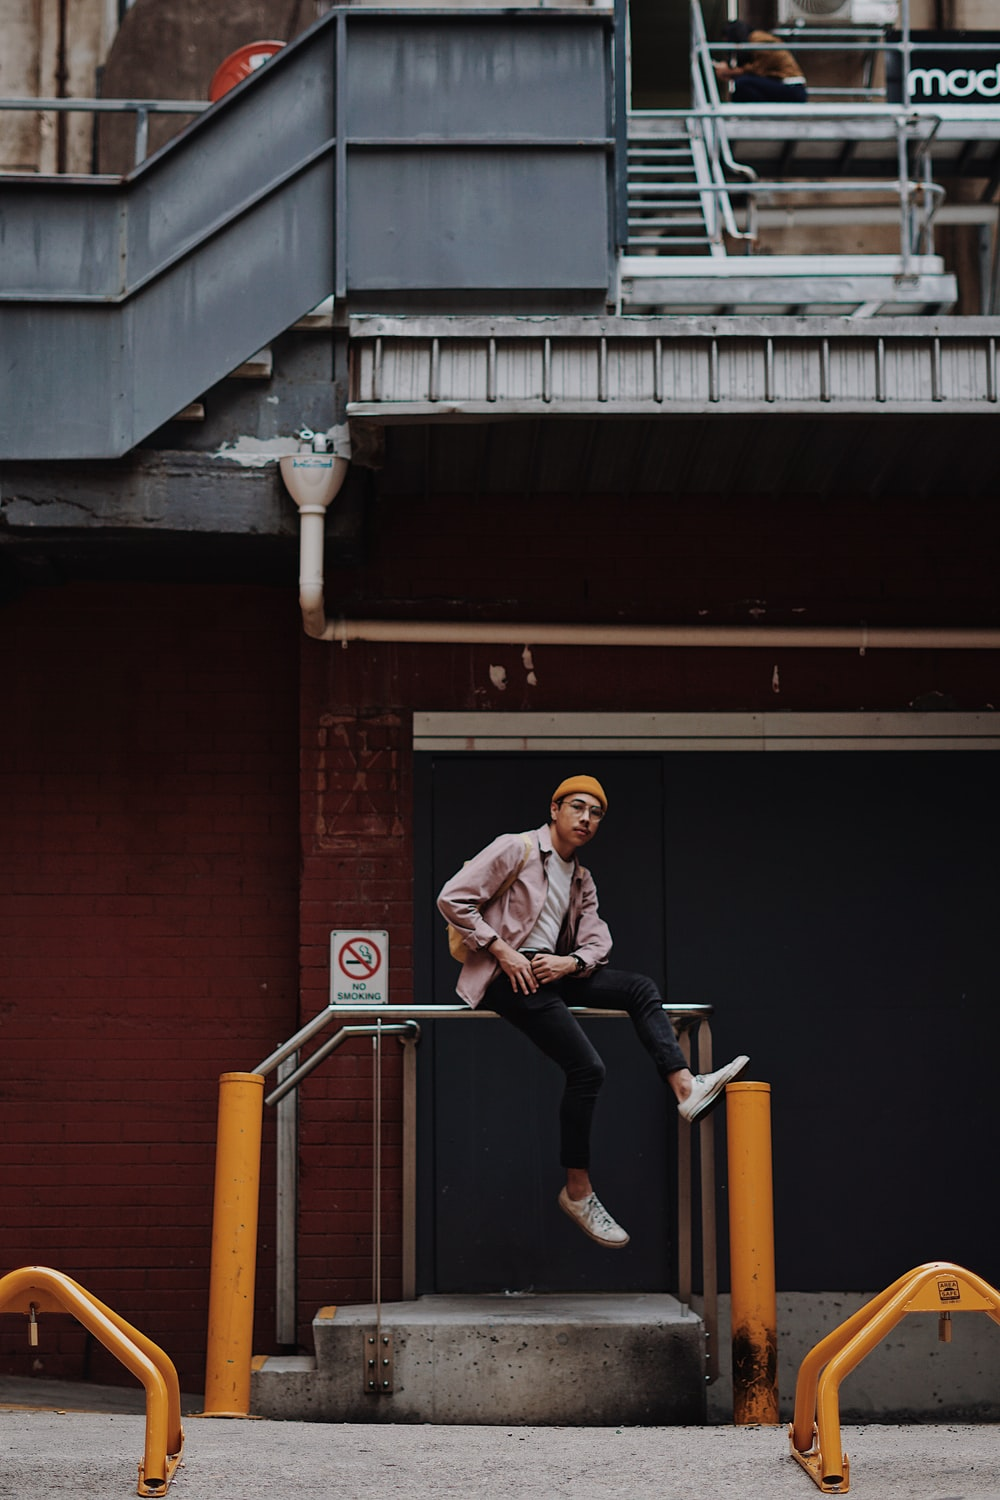 man sitting on railing in front of building